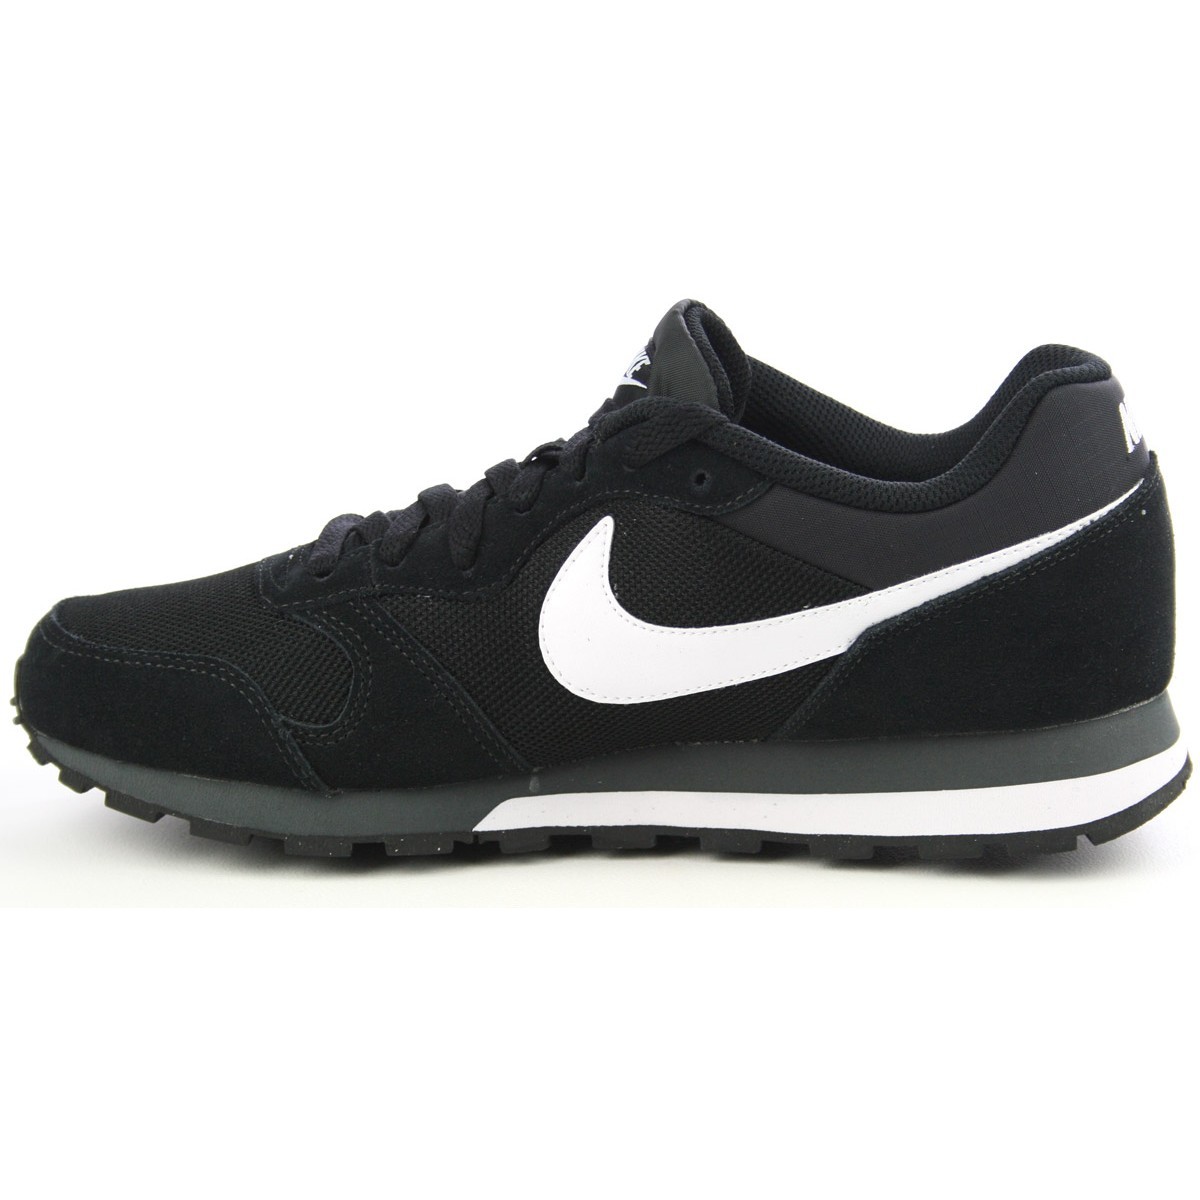 low priced f32cd 327c6 CHAUSSURES NIKE MD RUNNER 2   Tennispro